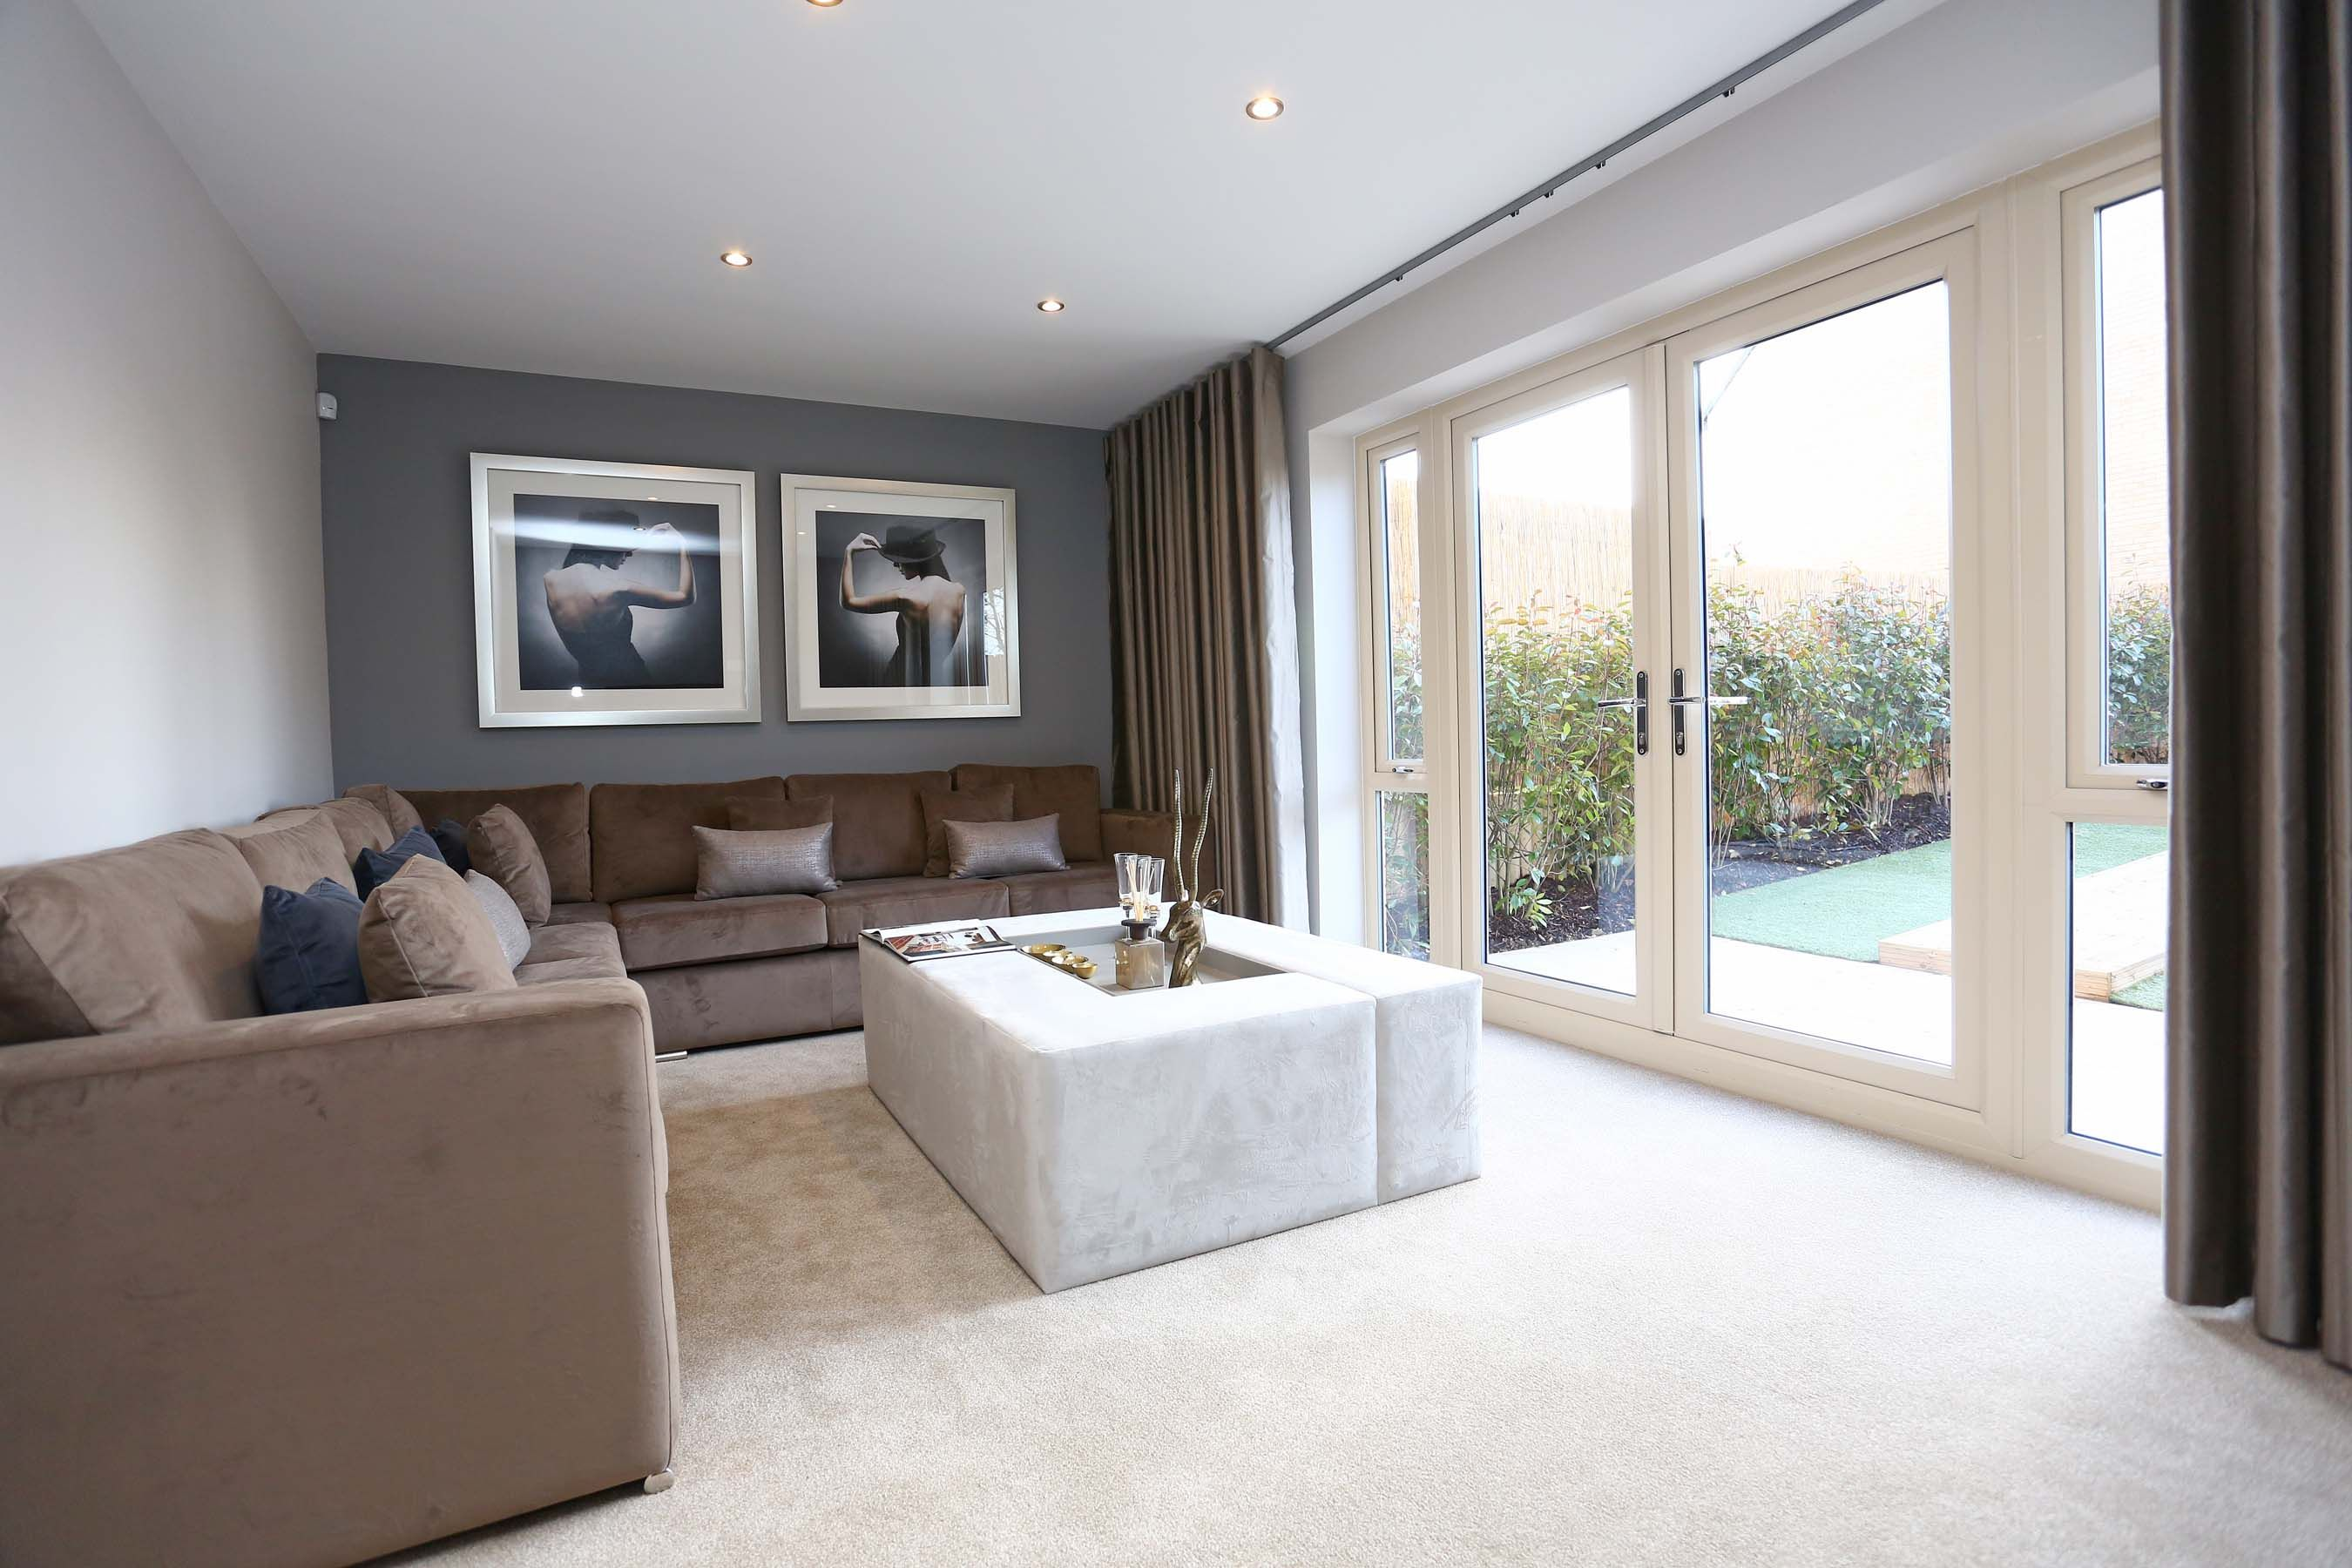 The Lounge Spans The Back Of The Home With Large French Doors That